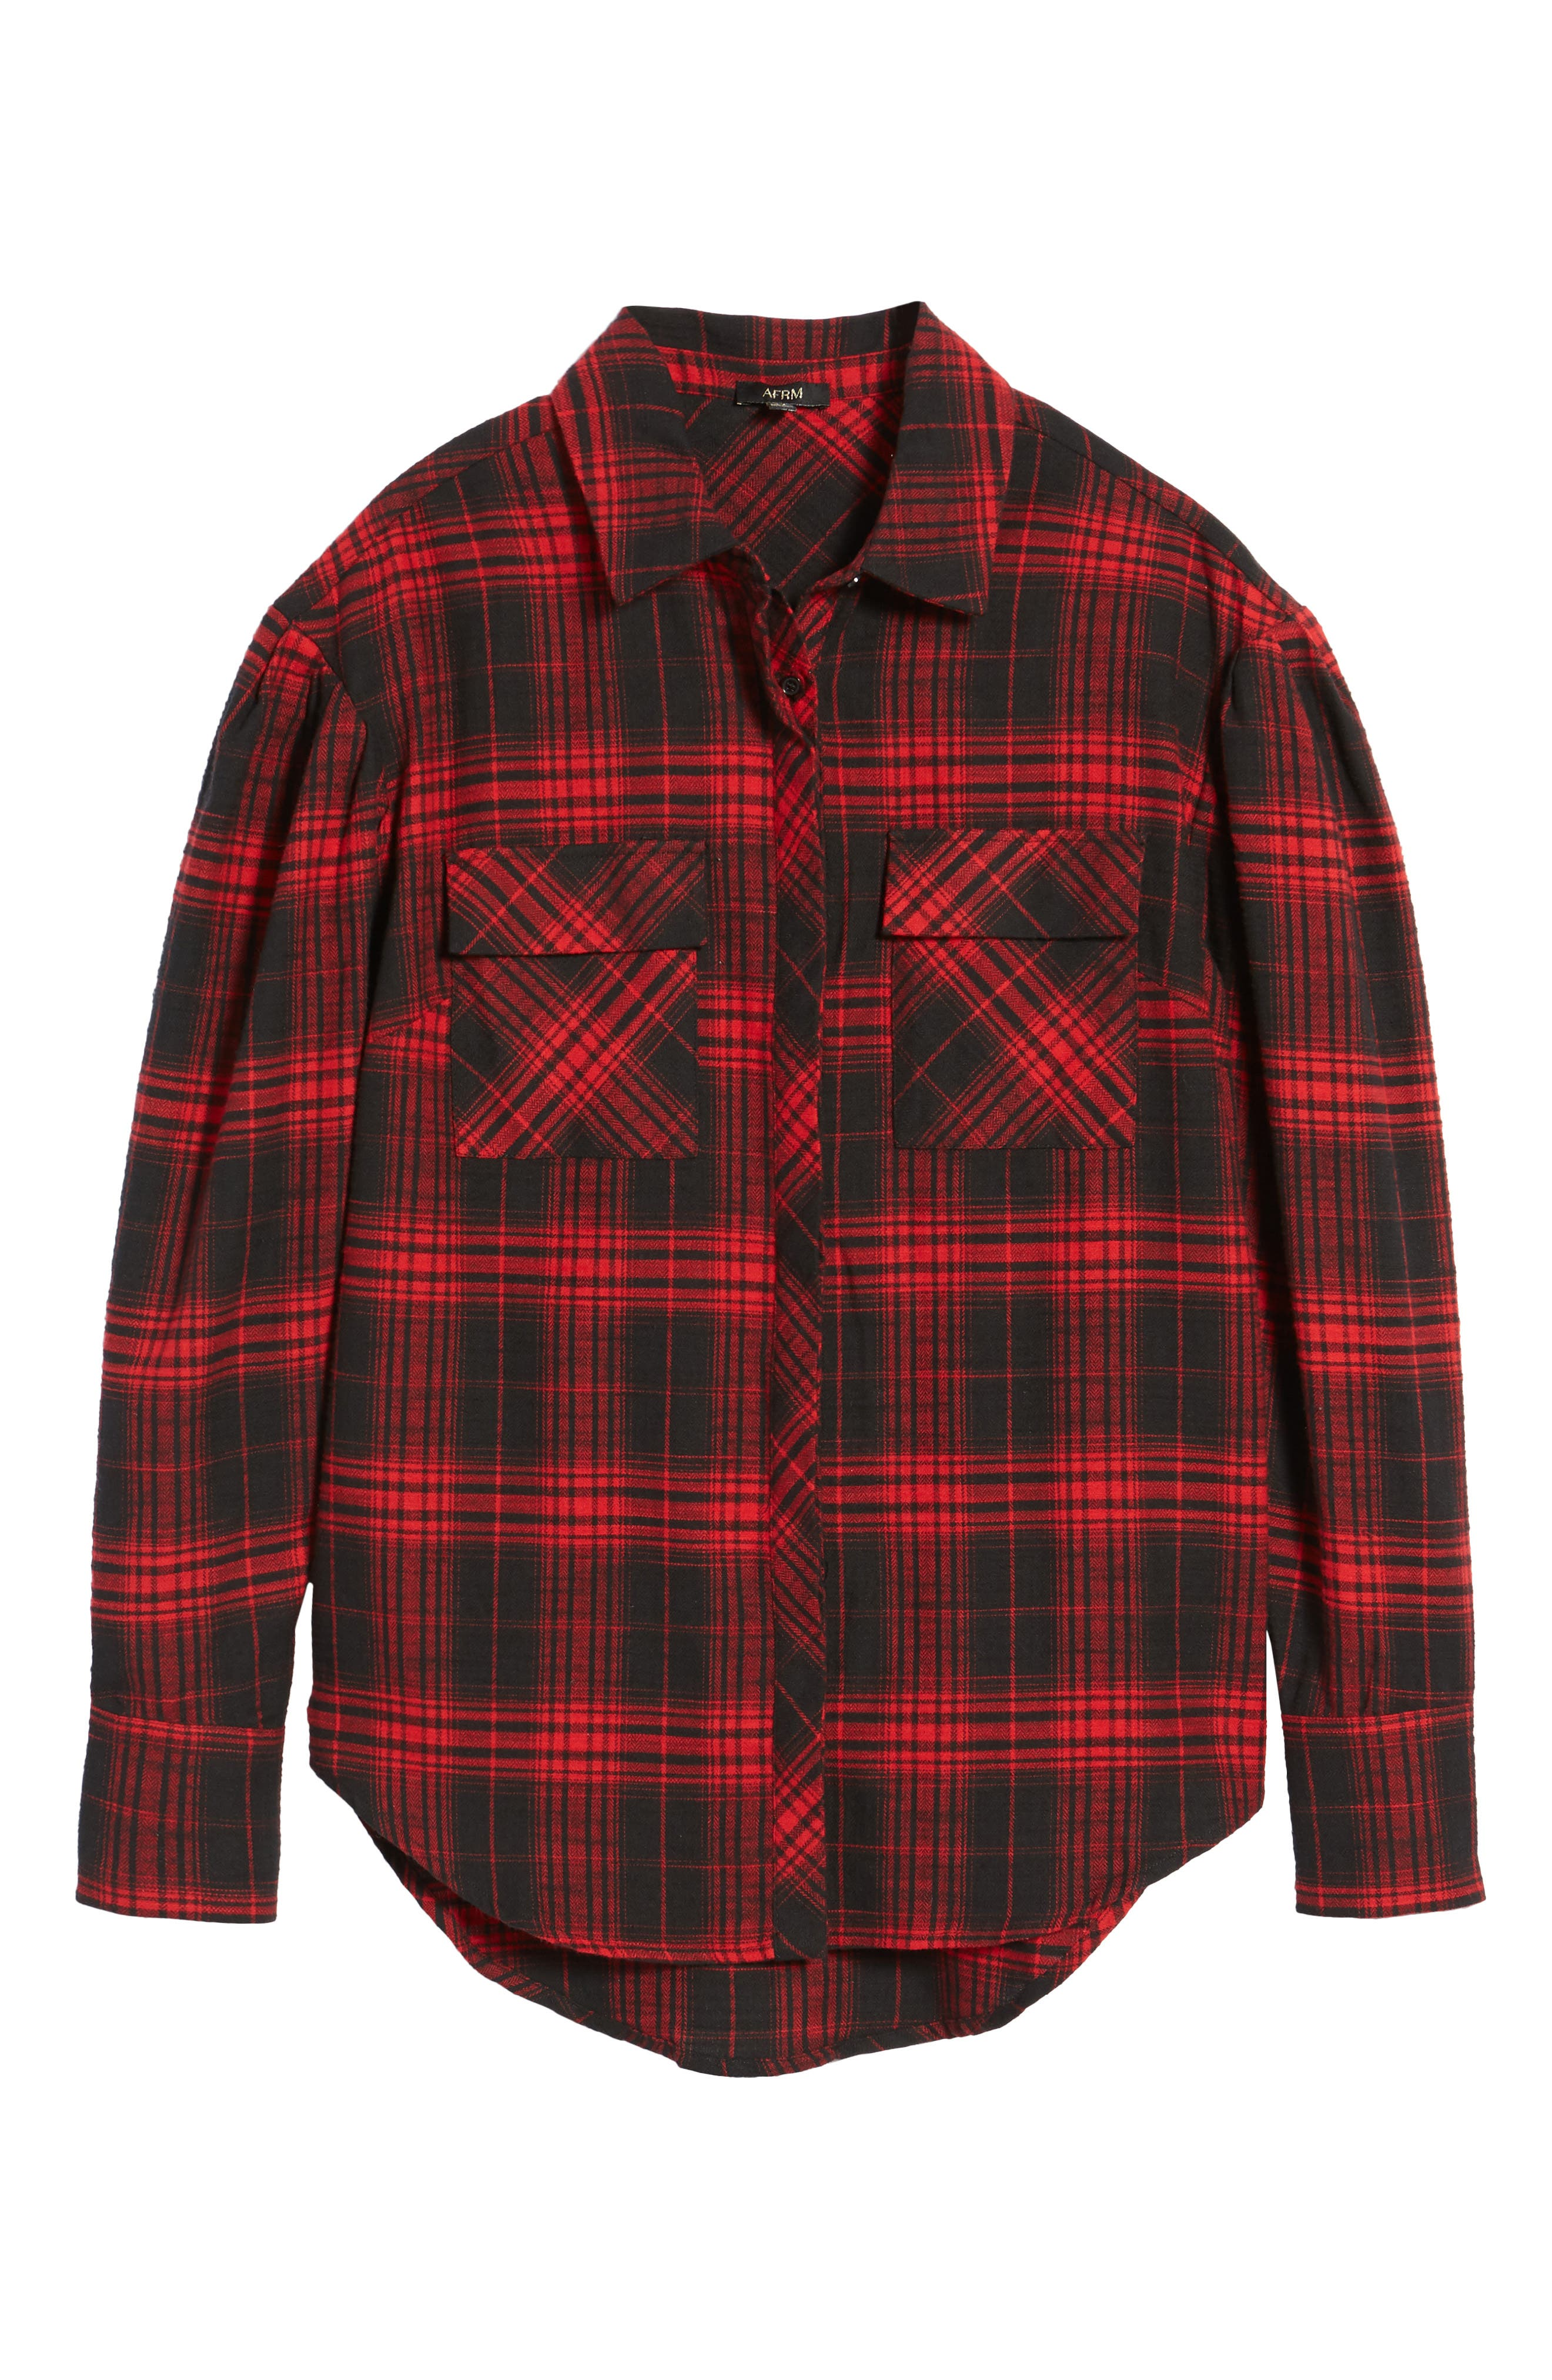 Victoria Oversize Flannel Shirt,                             Alternate thumbnail 6, color,                             Red Flannel